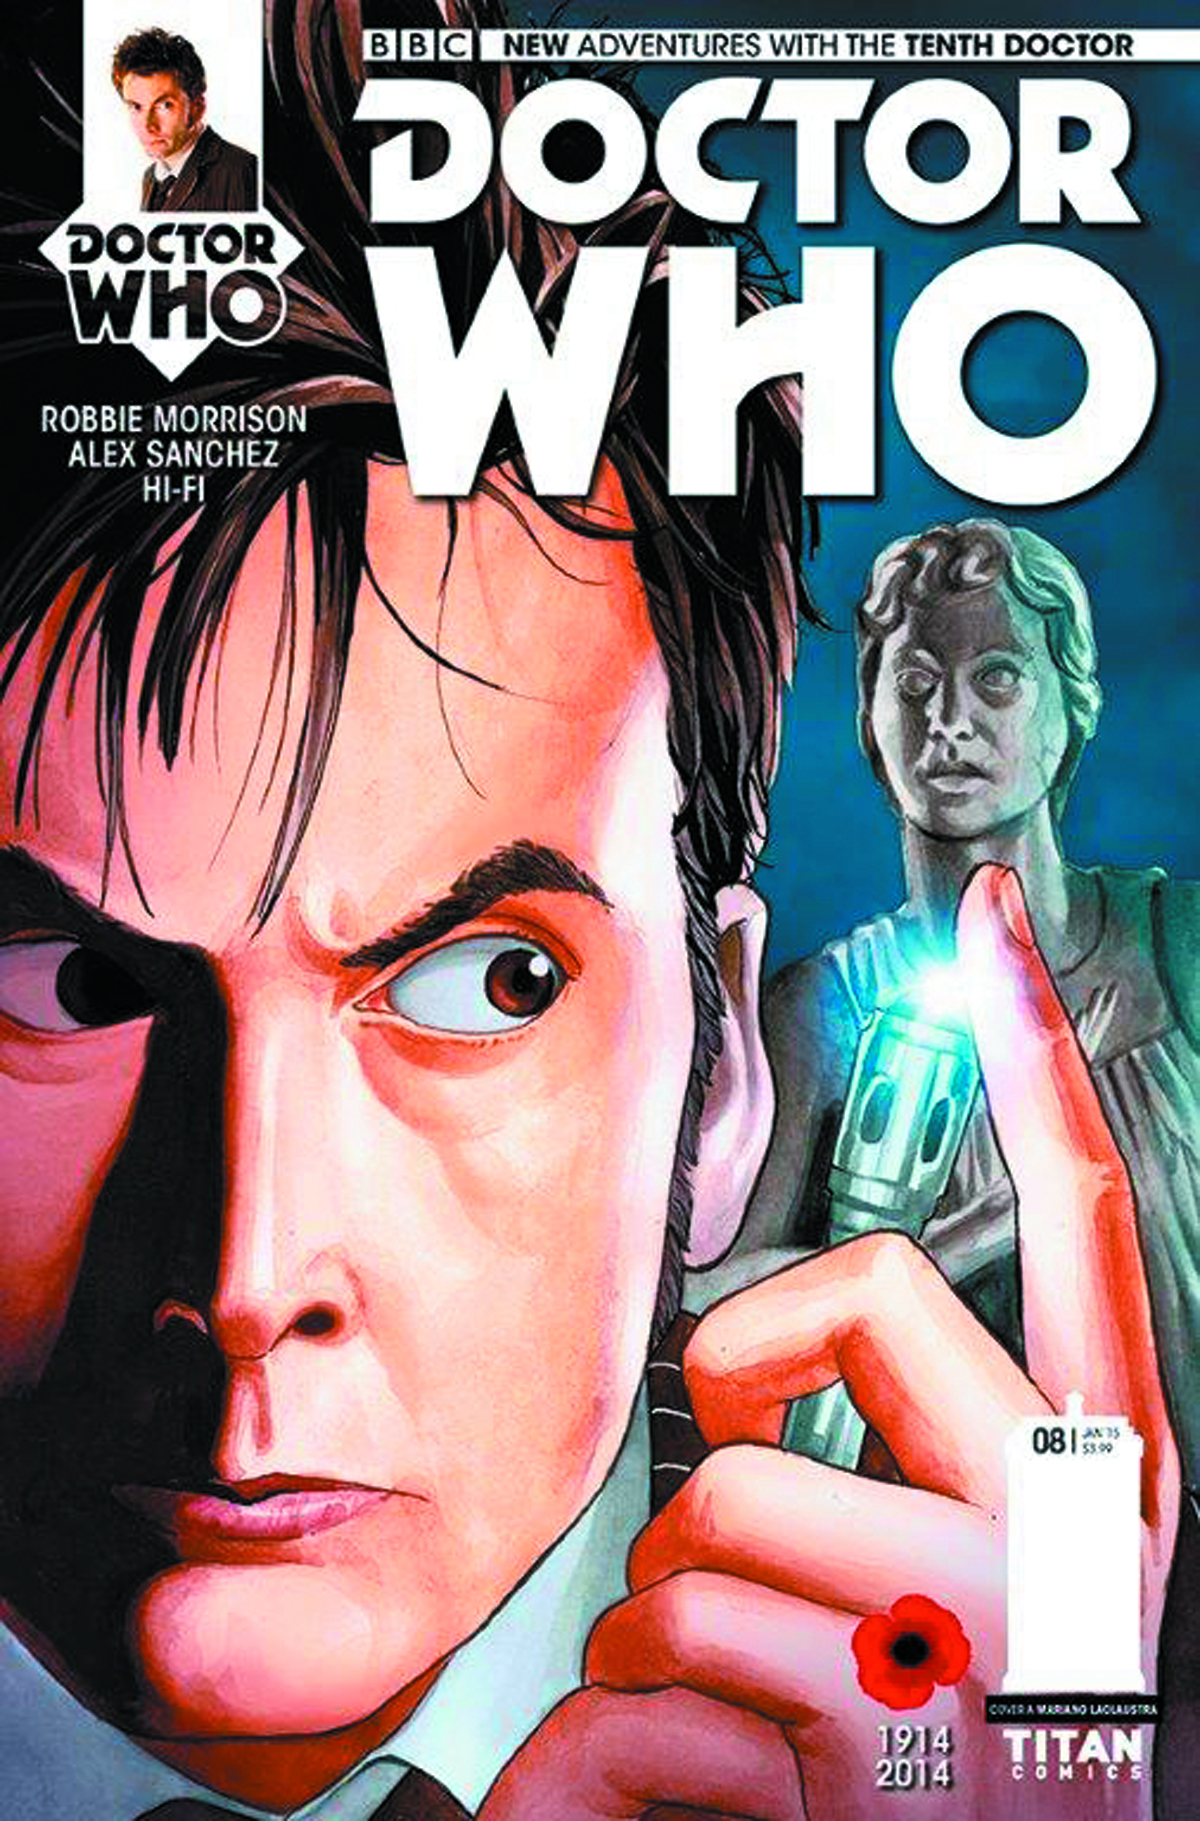 DOCTOR WHO 10TH #8 REG LACLAUSTRA